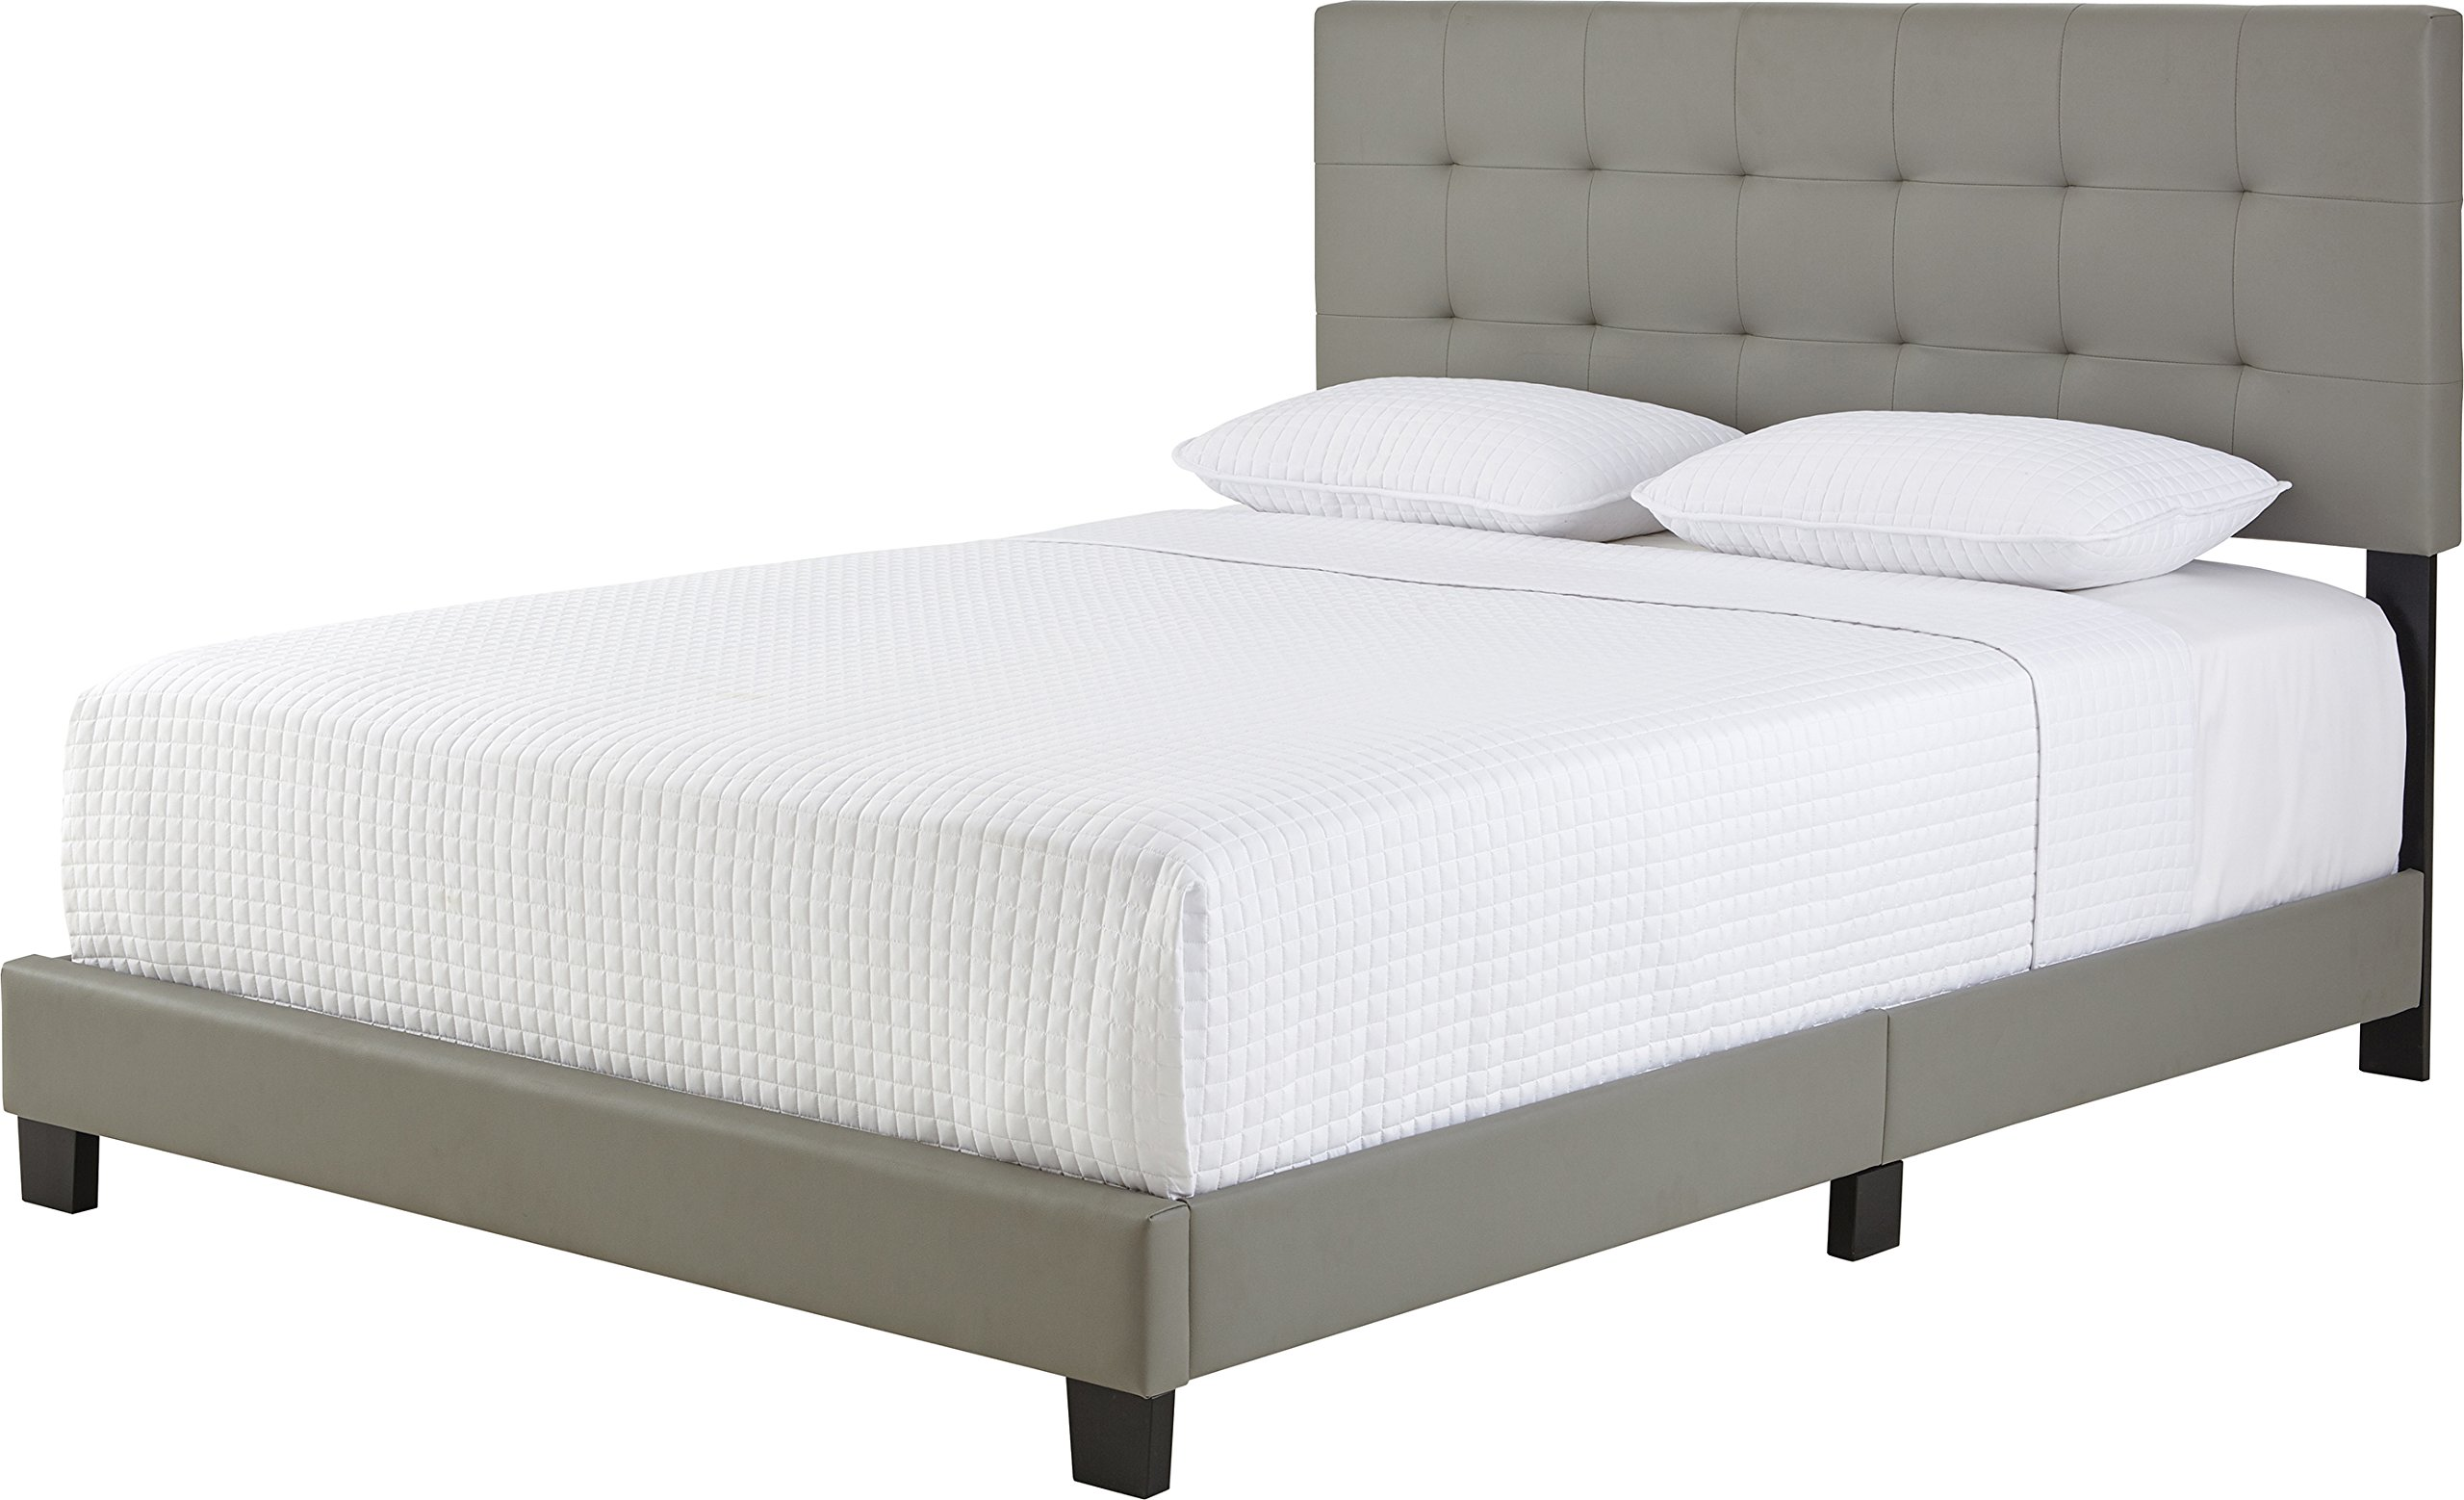 Flex Form Murphy Upholstered Platform Bed Frame with Tufted Headboard: Faux Leather, Grey, Queen by Flex Form (Image #4)